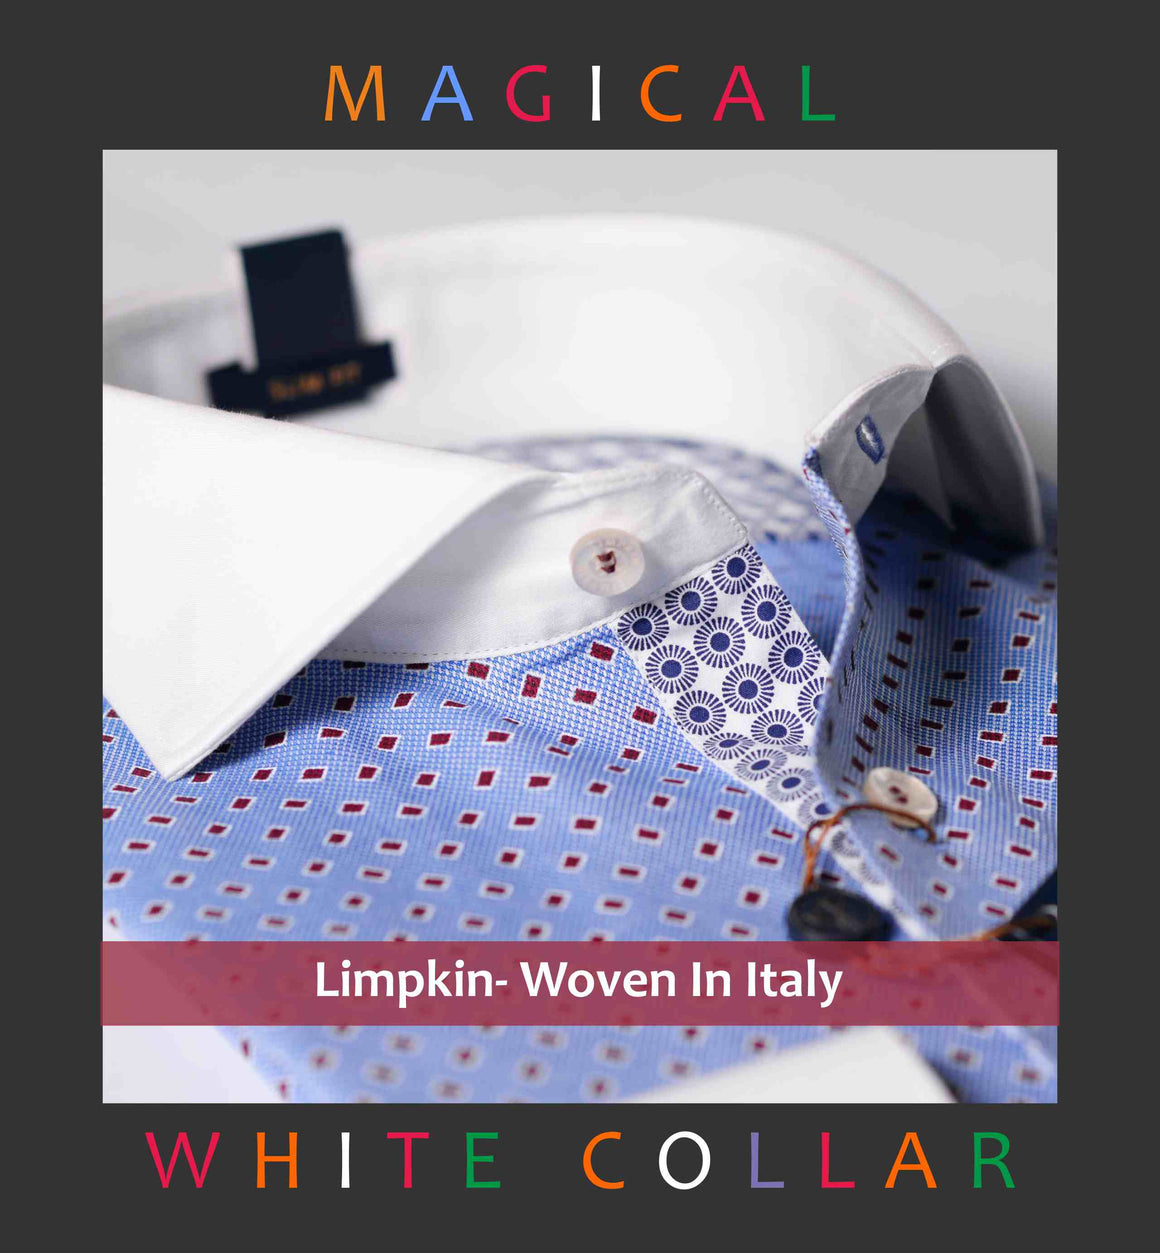 FLORENCE- MAGICAL PRINT & WHITE COLLAR